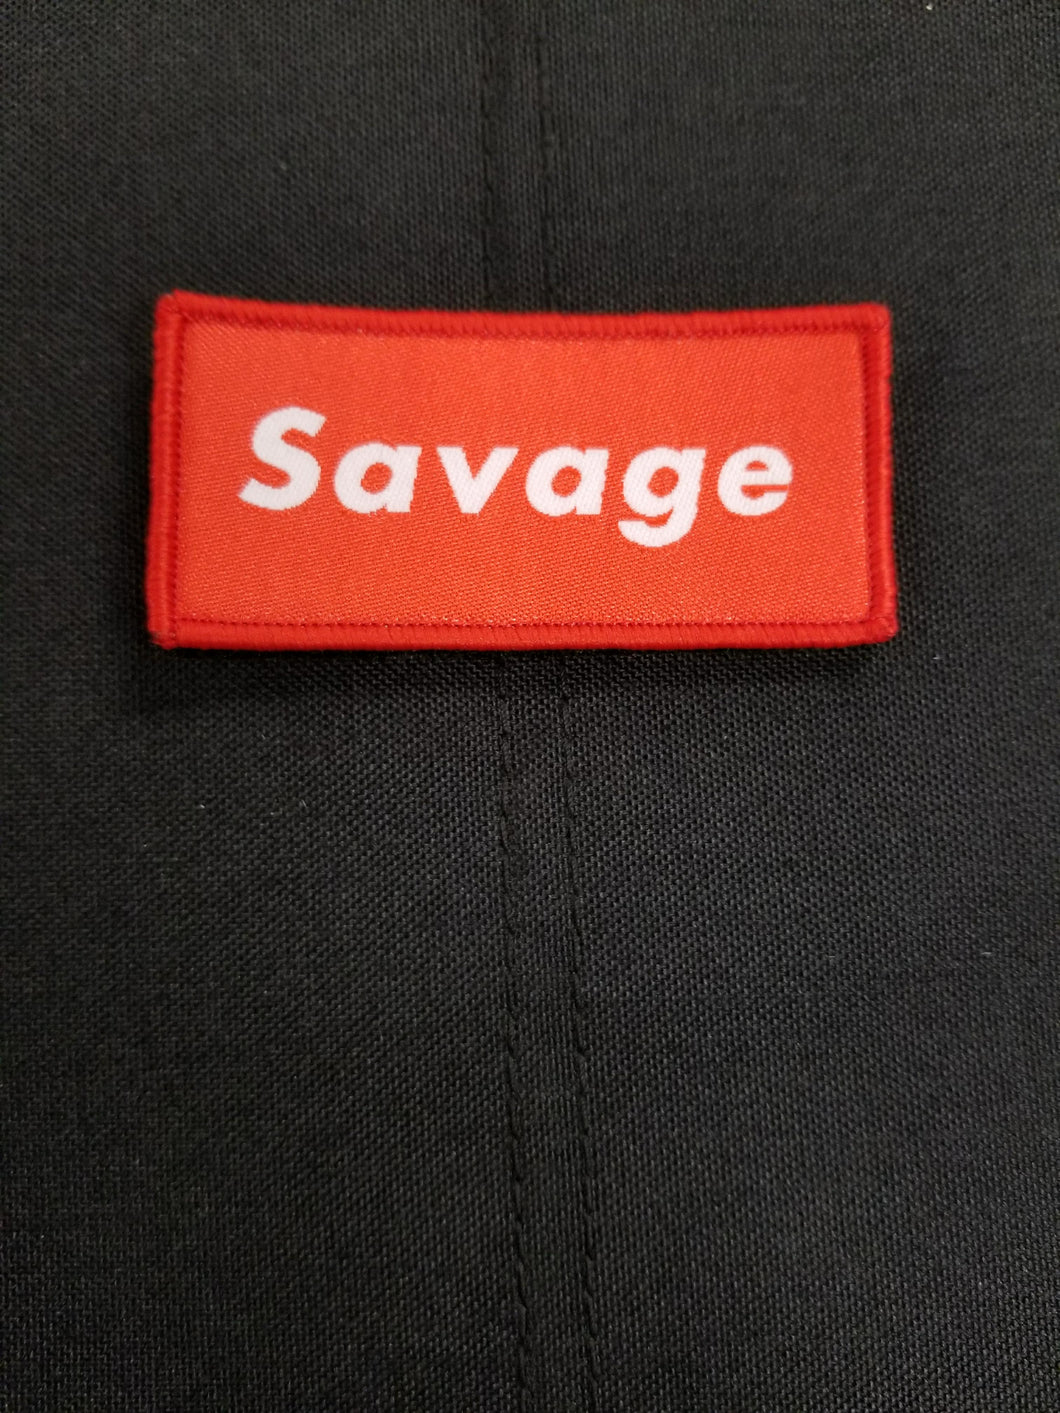 Savage Red Patch